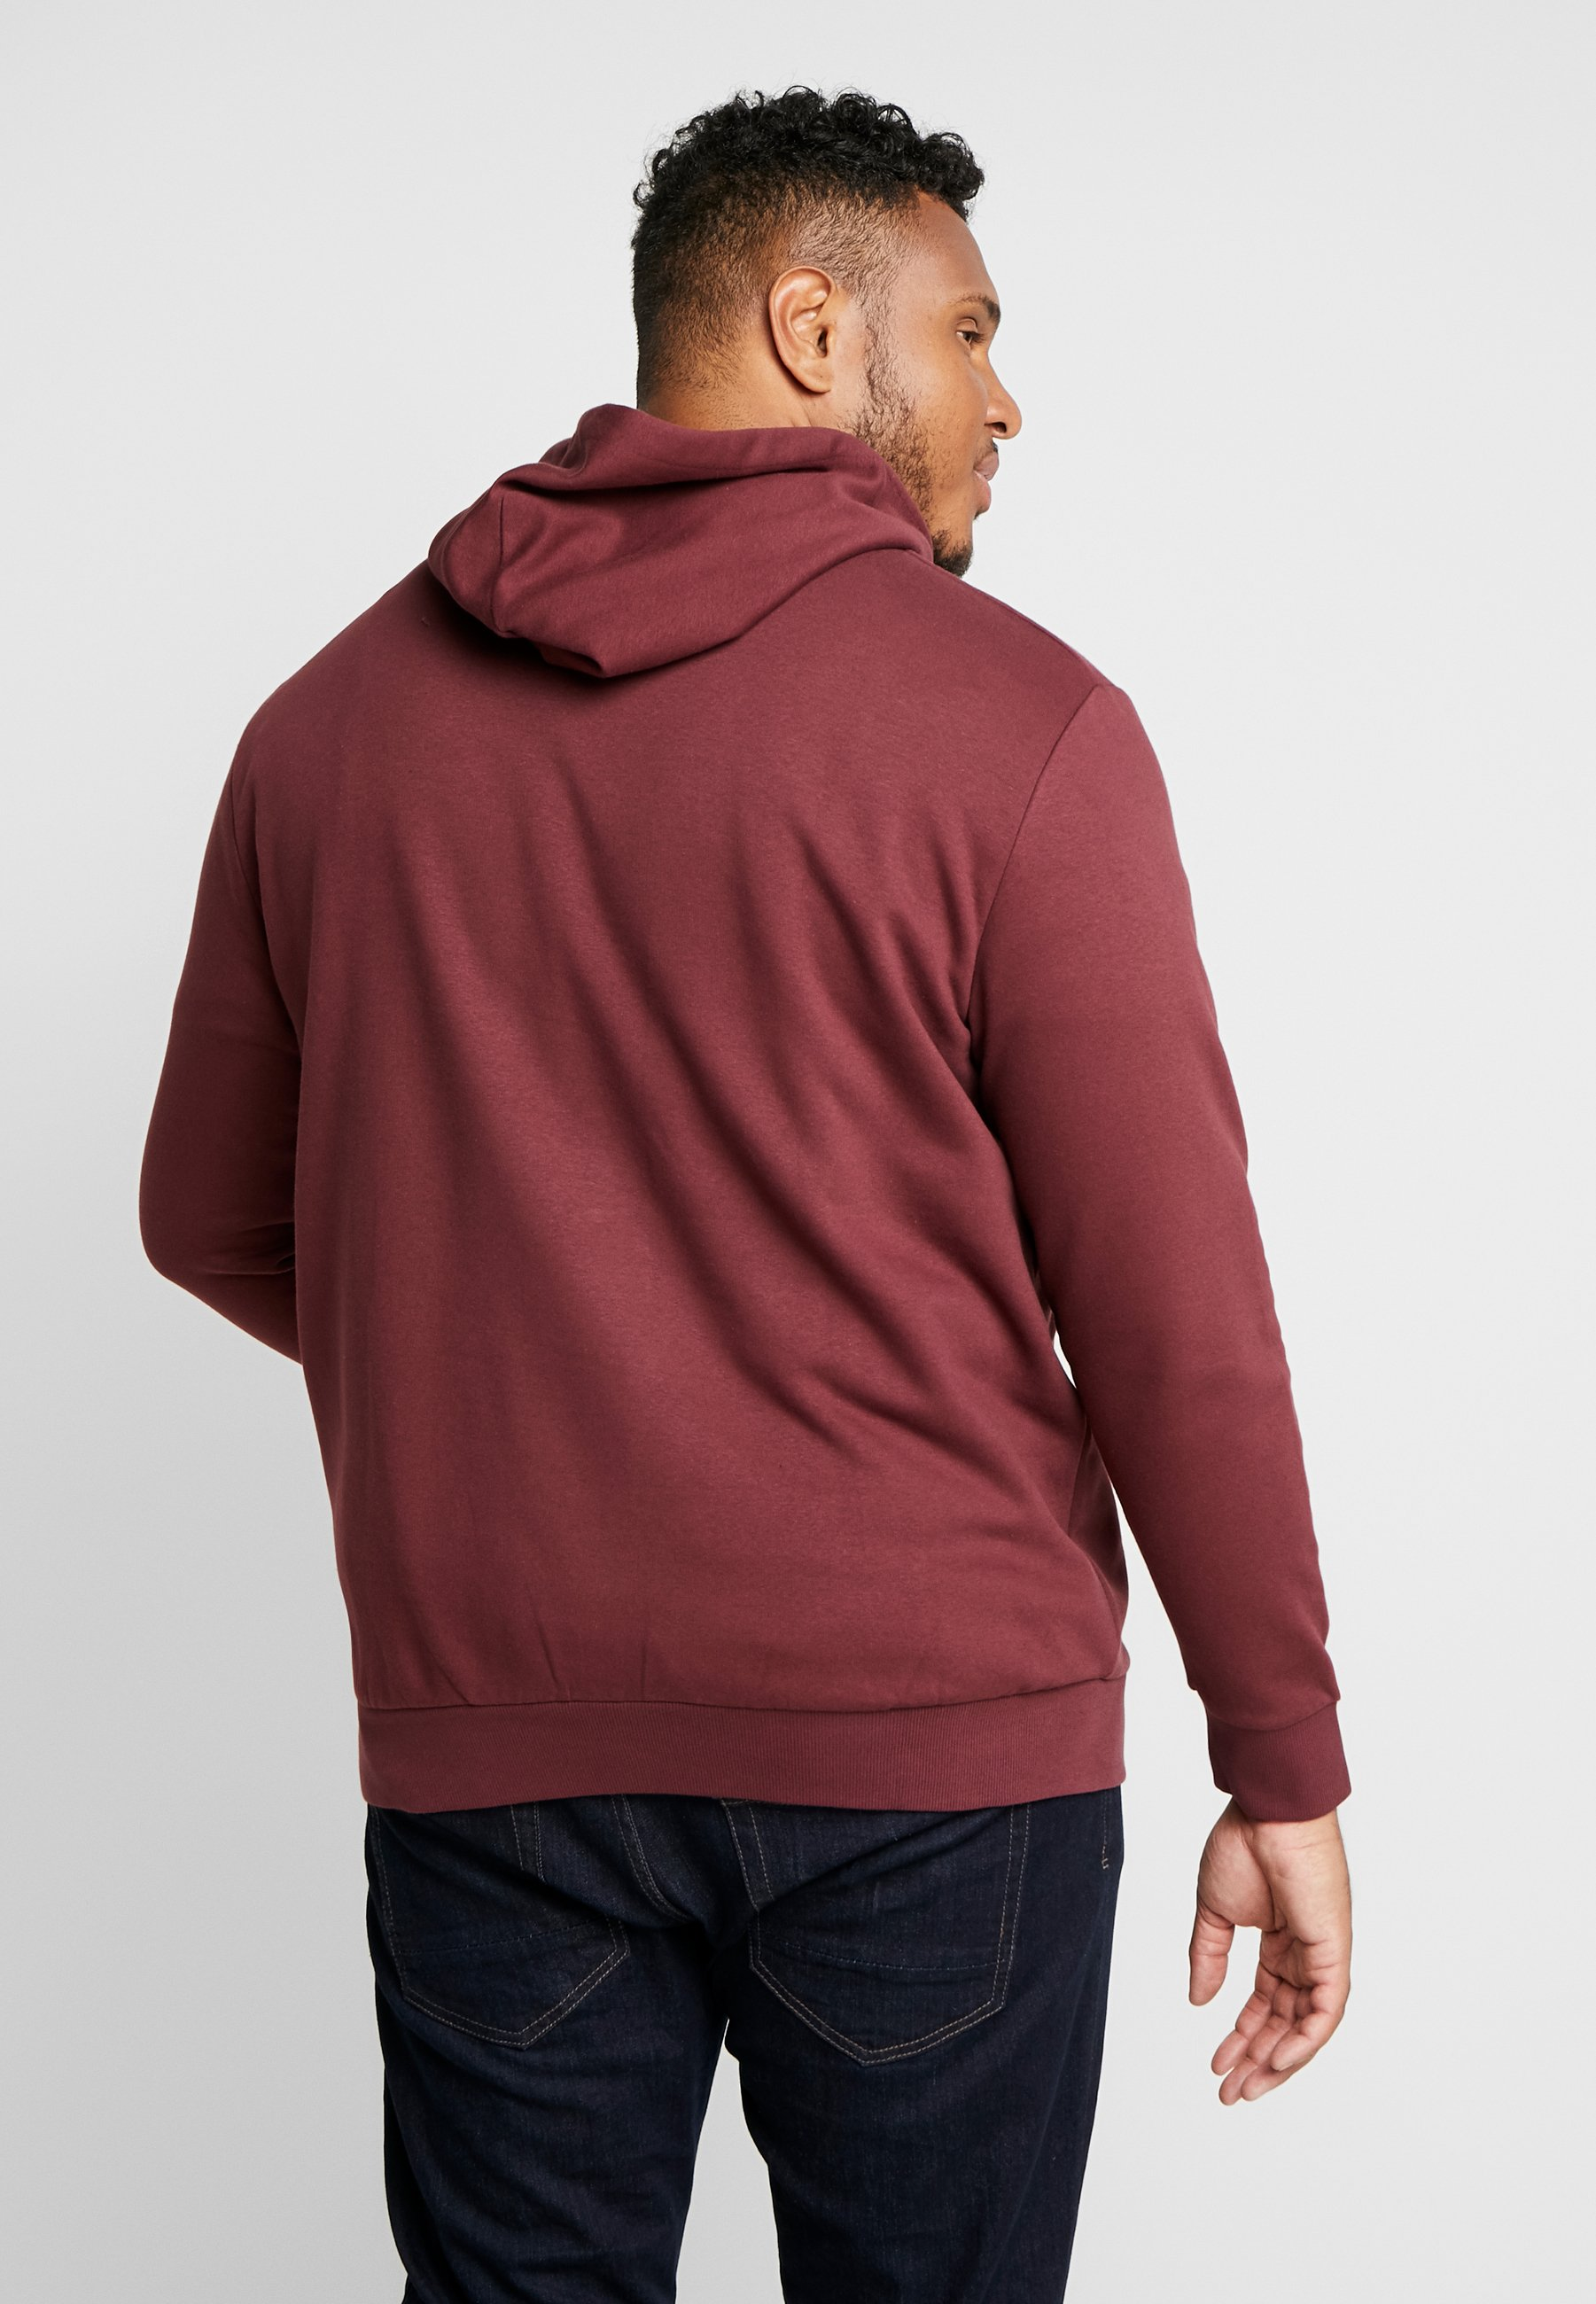 Jack & Jones JJELOGO HOOD - Kapuzenpullover port royale